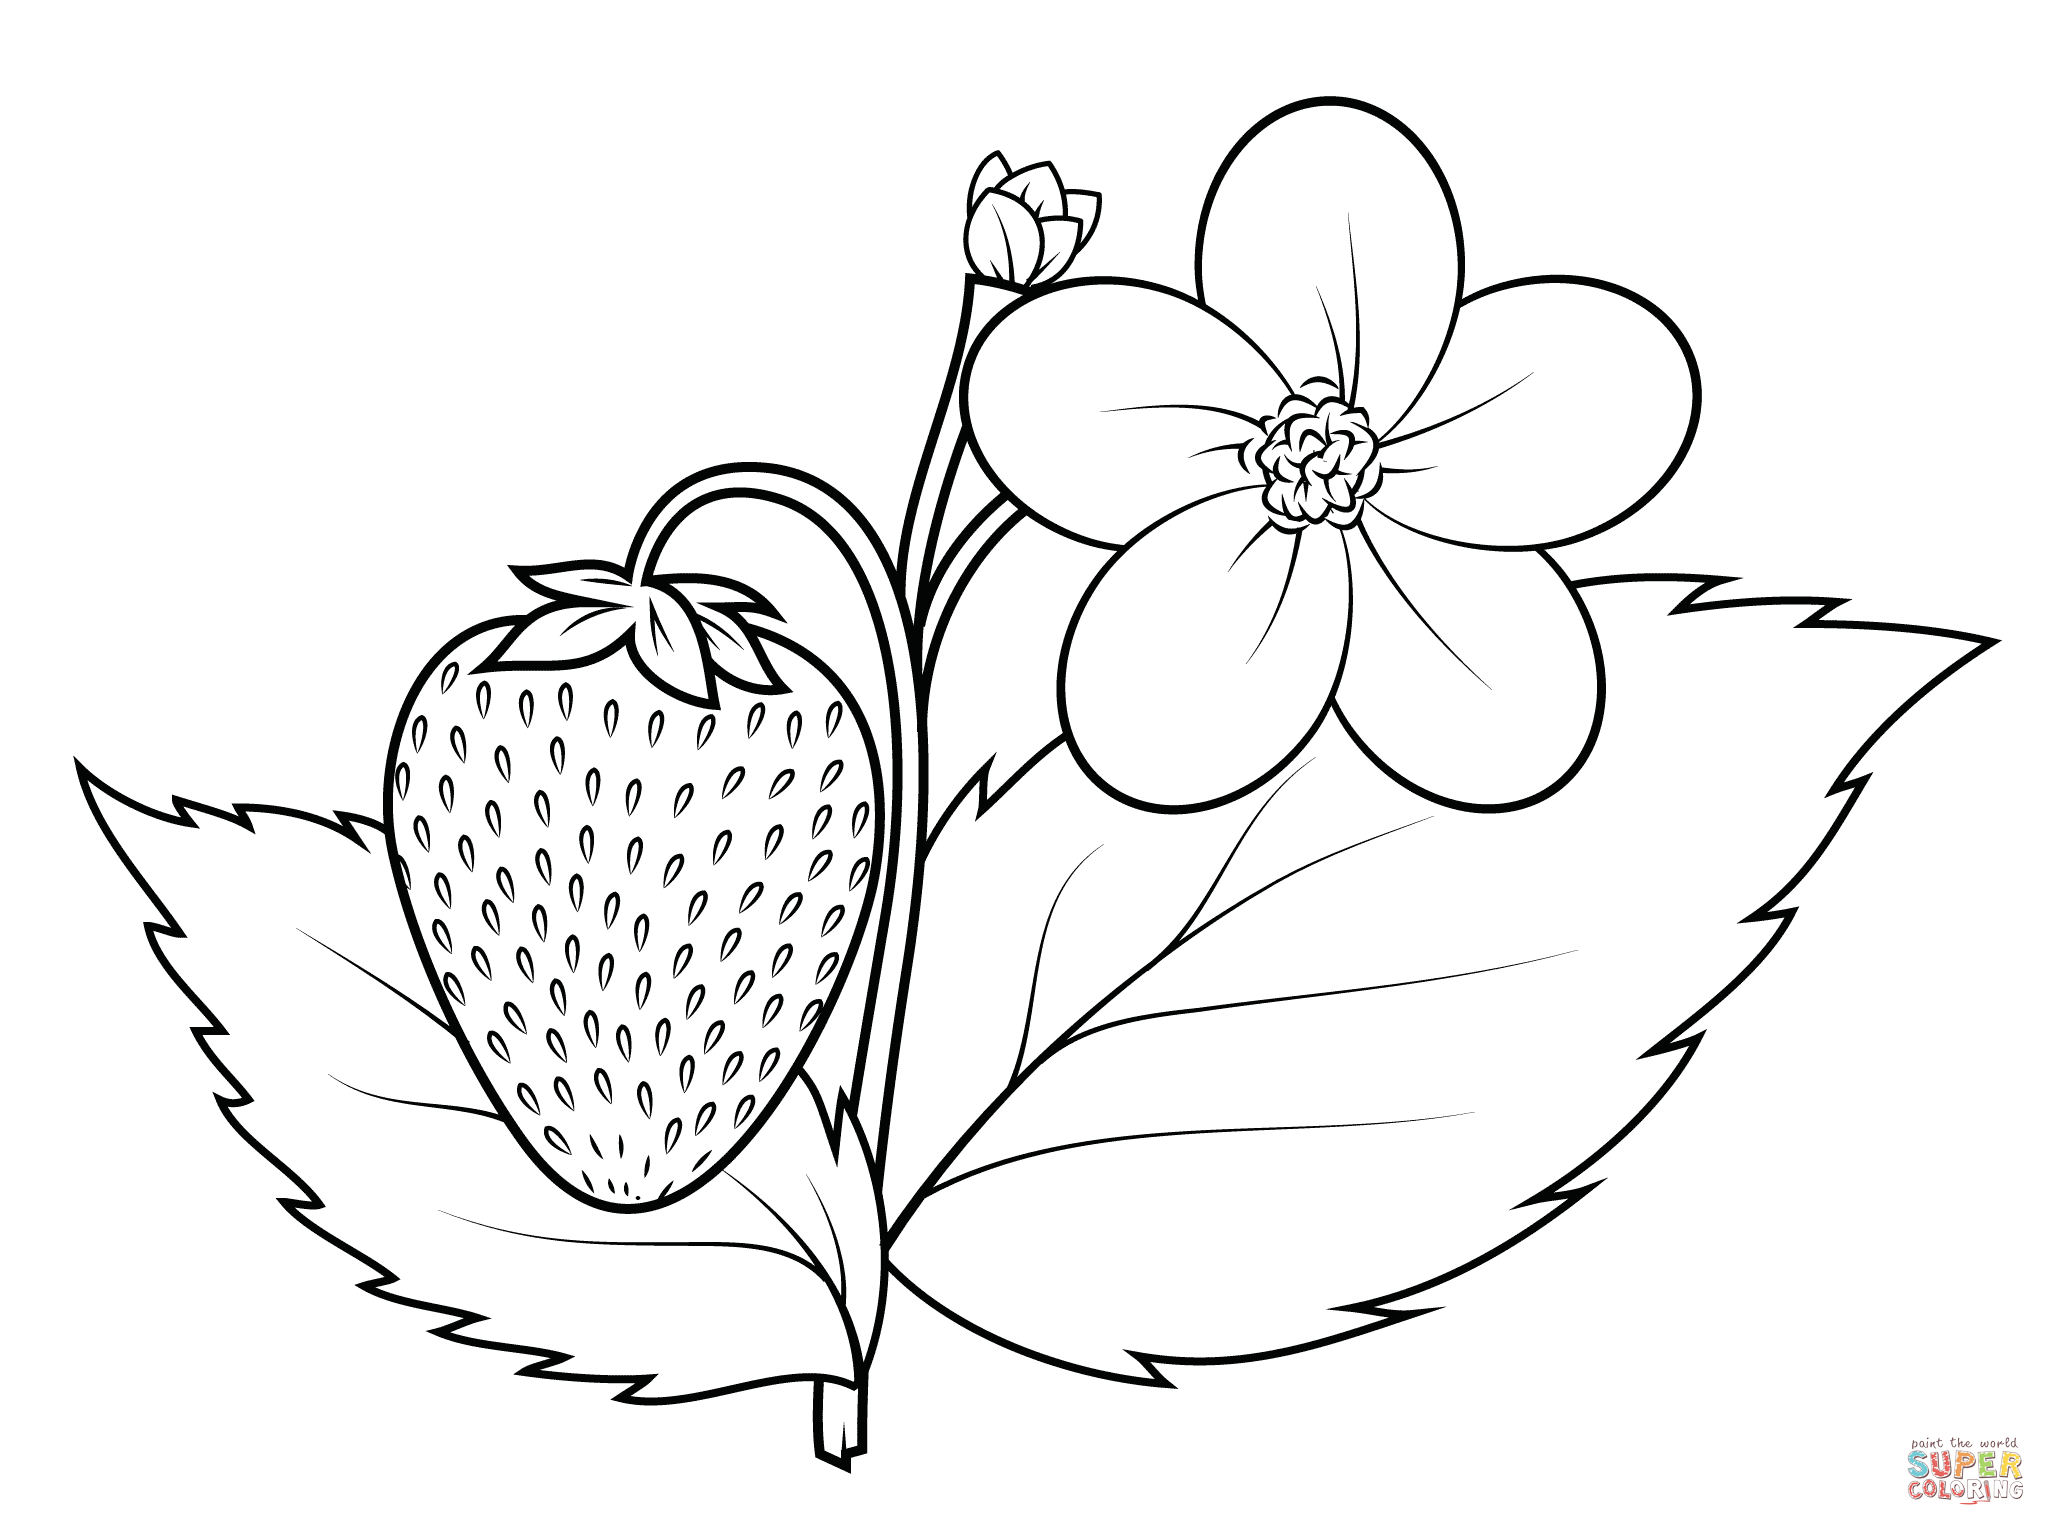 Strawberry coloring #8, Download drawings